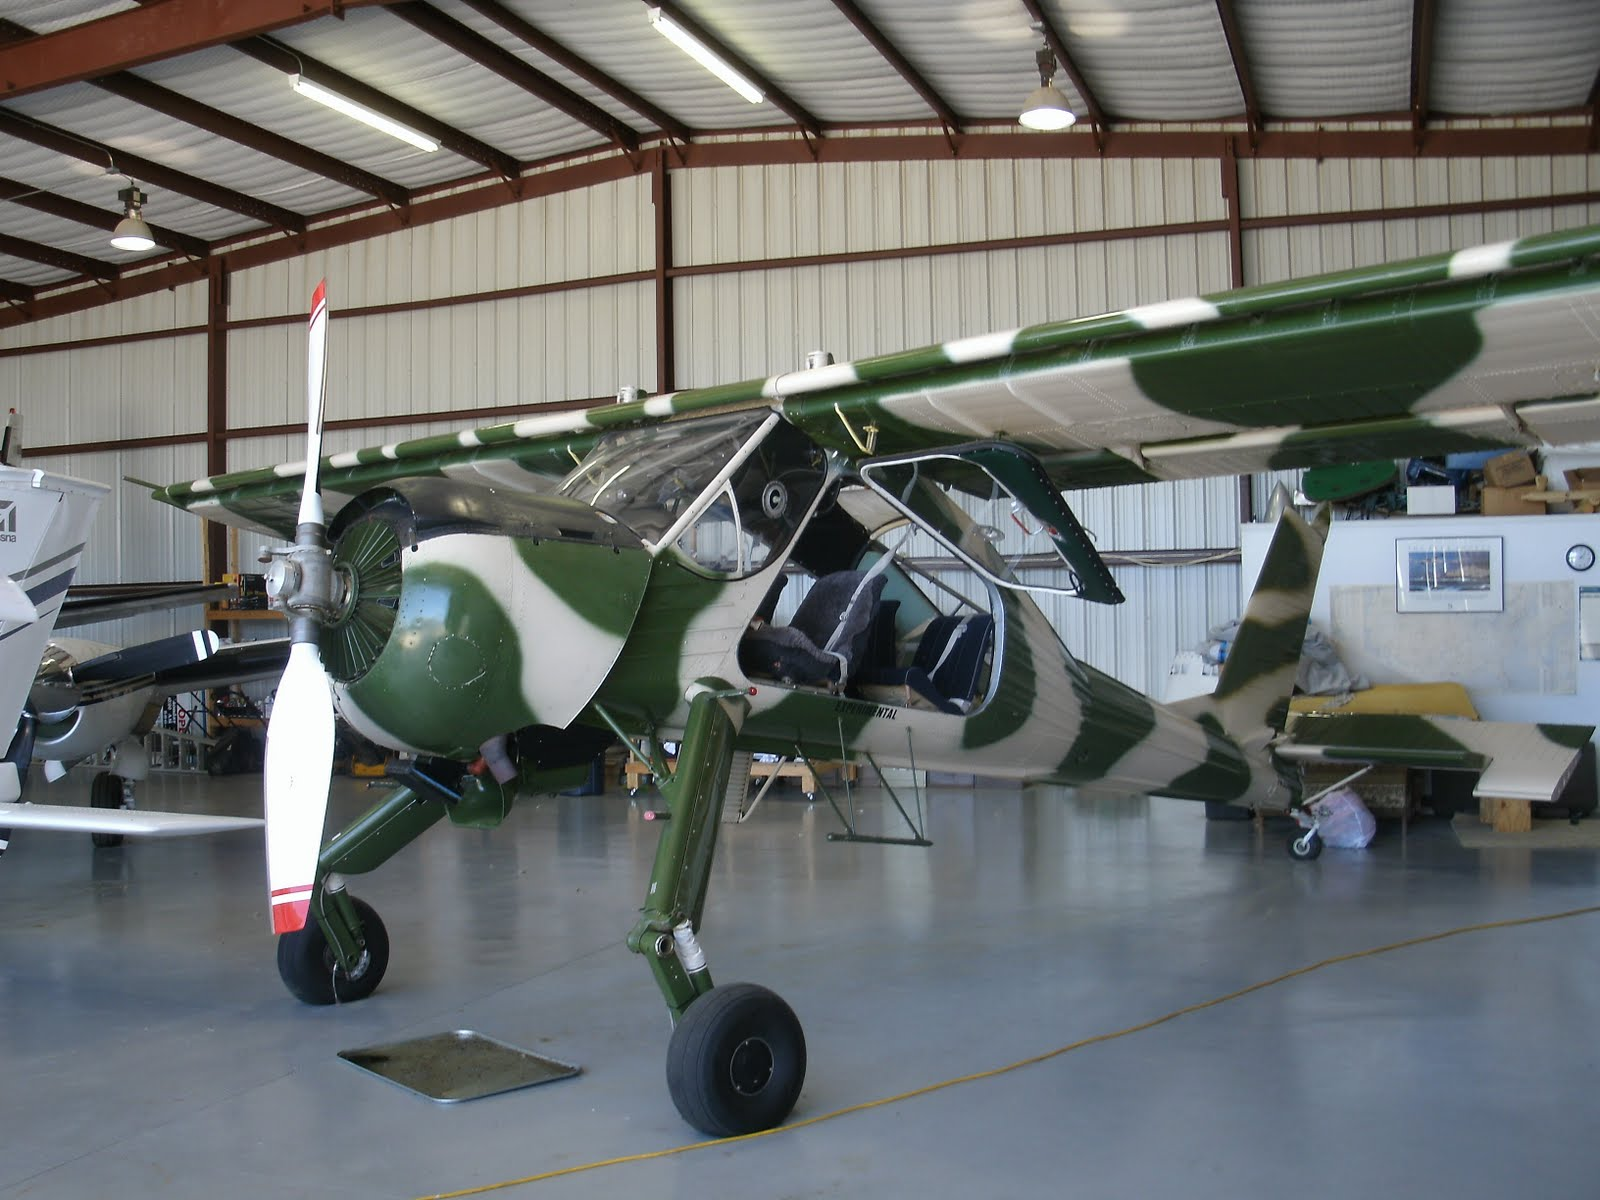 94th AeroClaims Aviation Consulting Group: The 94th AeroClaims